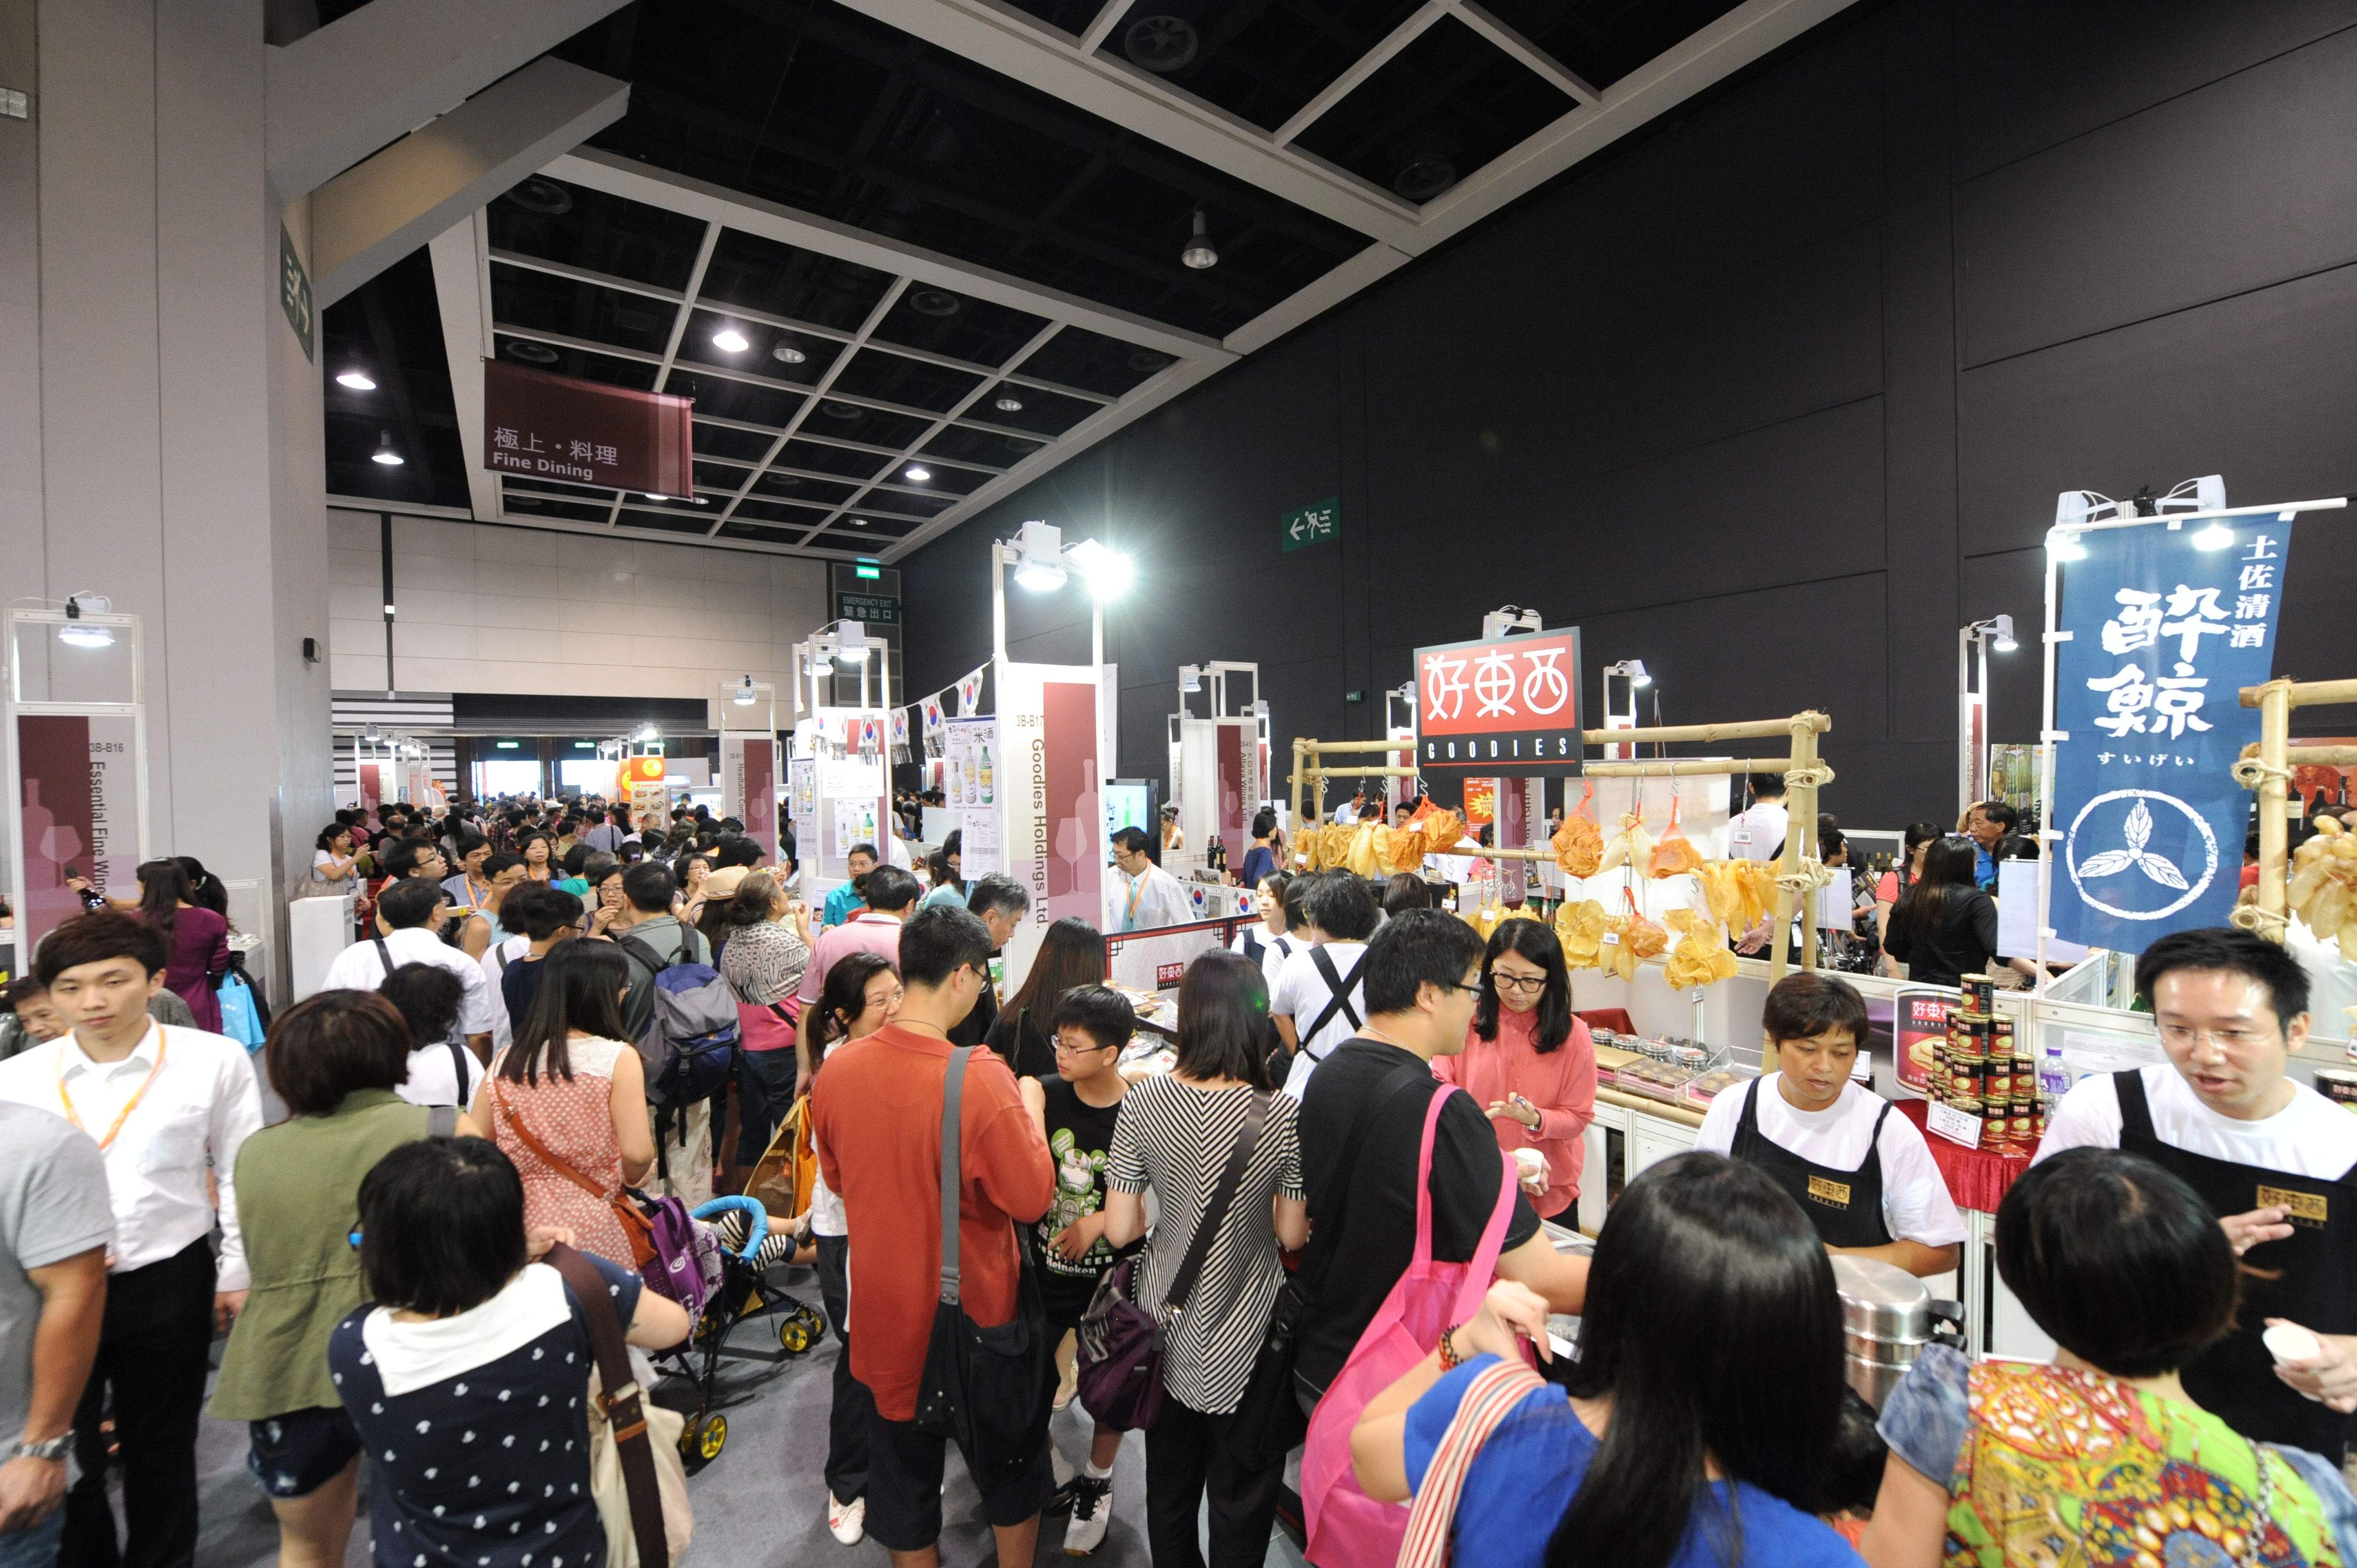 More Than 390 000 Visitors Take In This Year 39 S Food Expo Press Release Hktdc Media Room